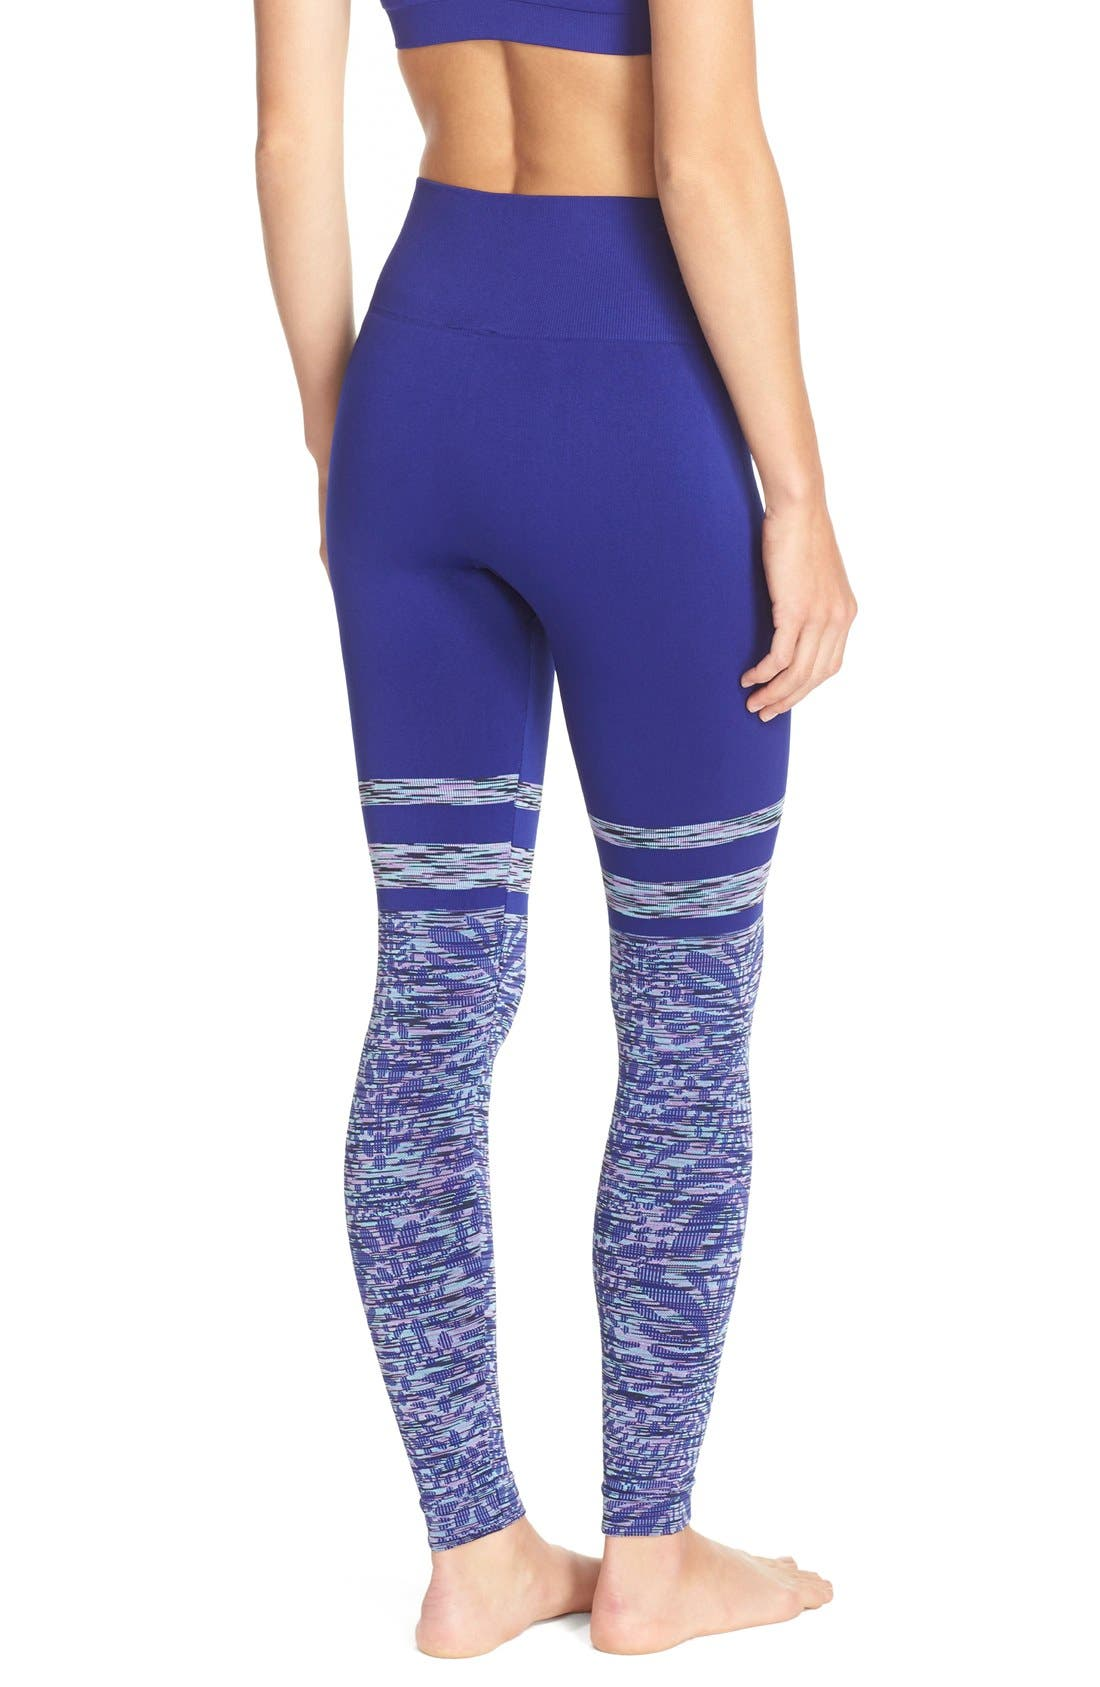 Alternate Image 2  - Climawear 'Sitting Pretty' High Rise Leggings